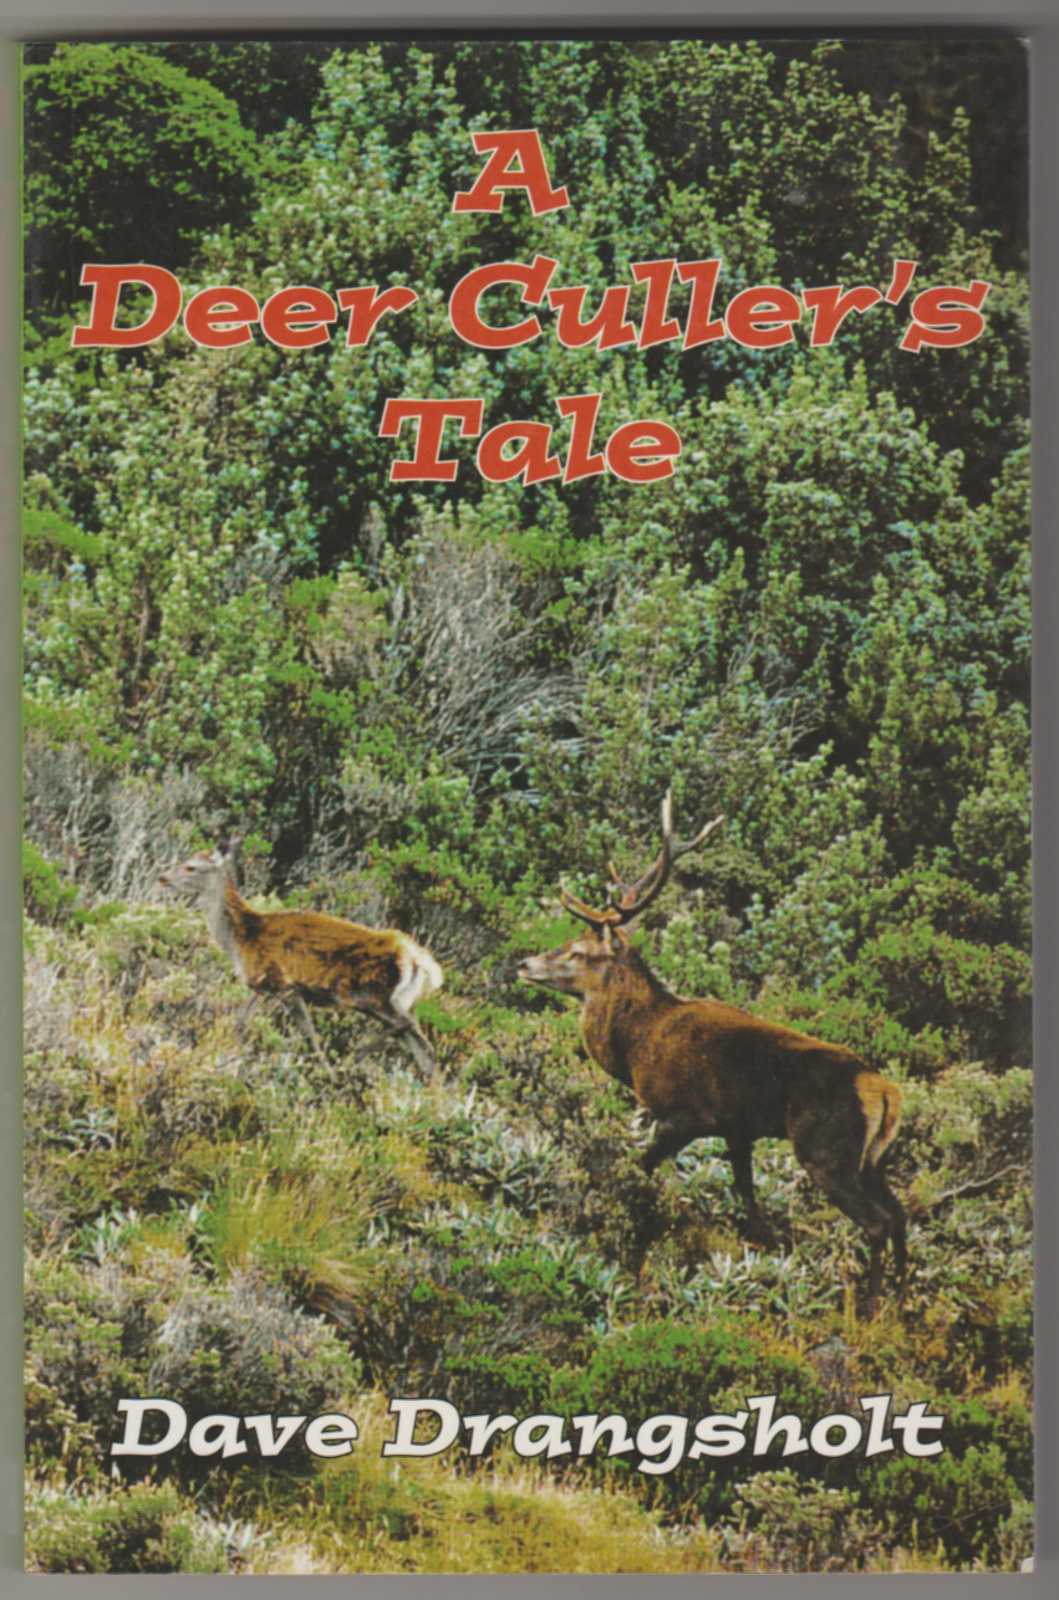 Image for A DEER CULLER'S TALE (Signed Copy)